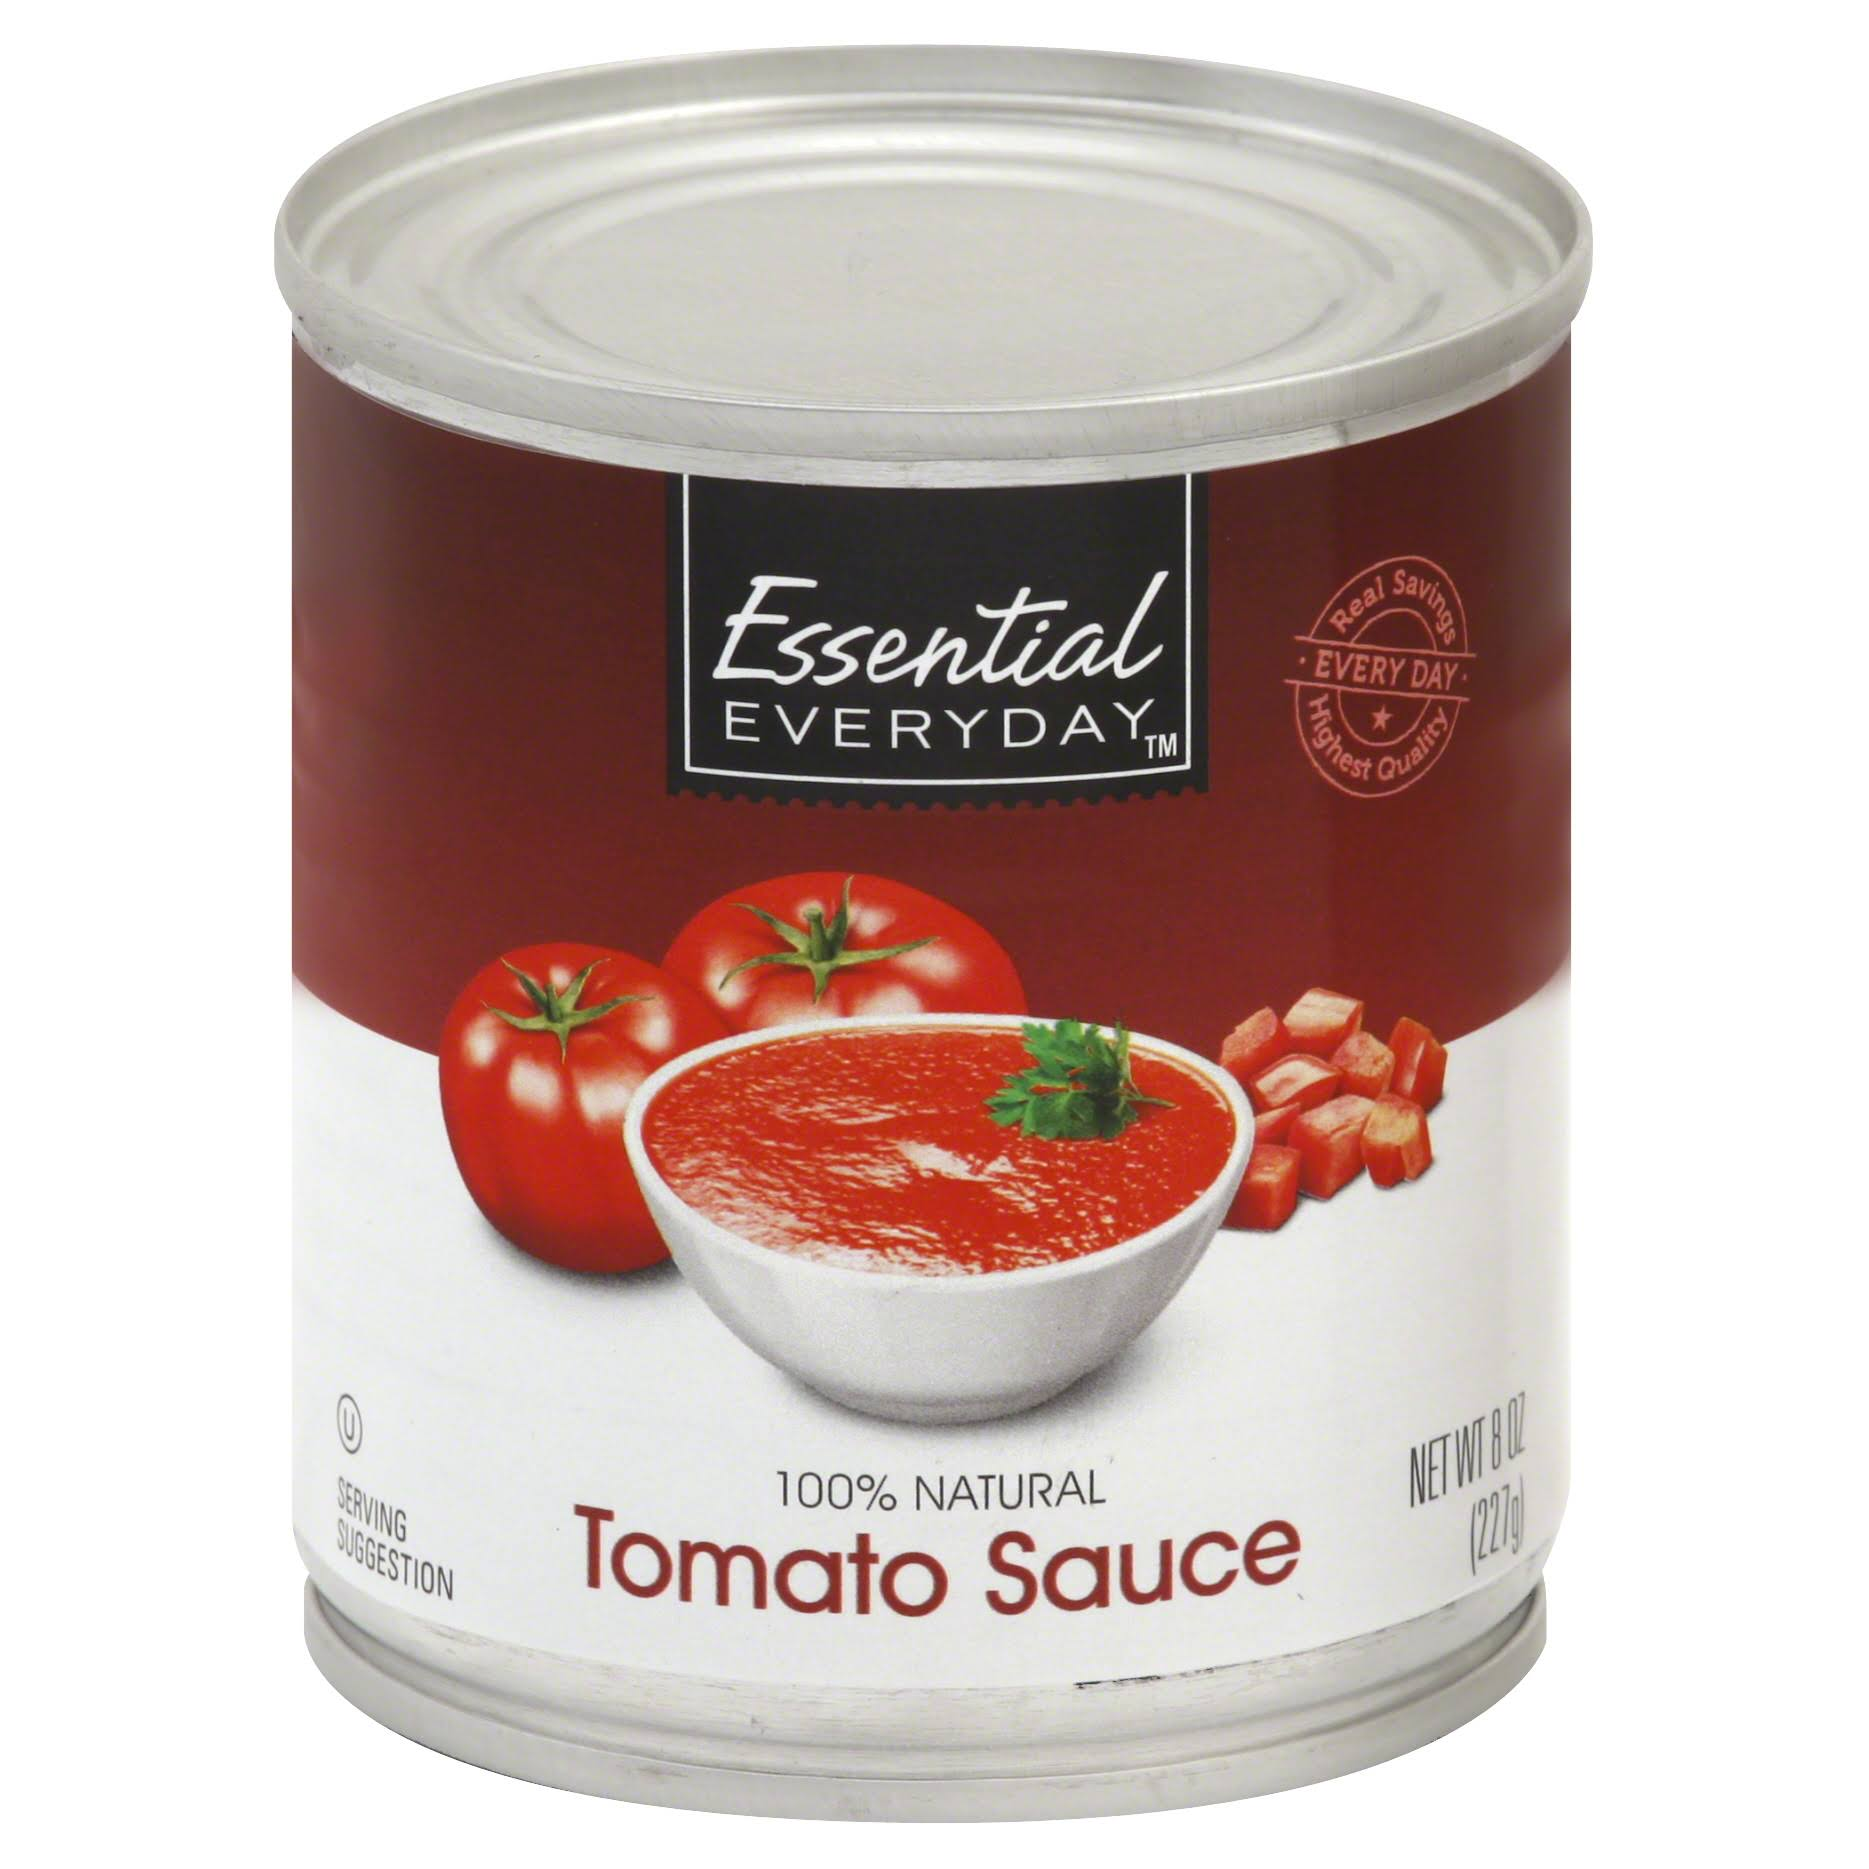 Essential Everyday Tomato Sauce - 8 oz